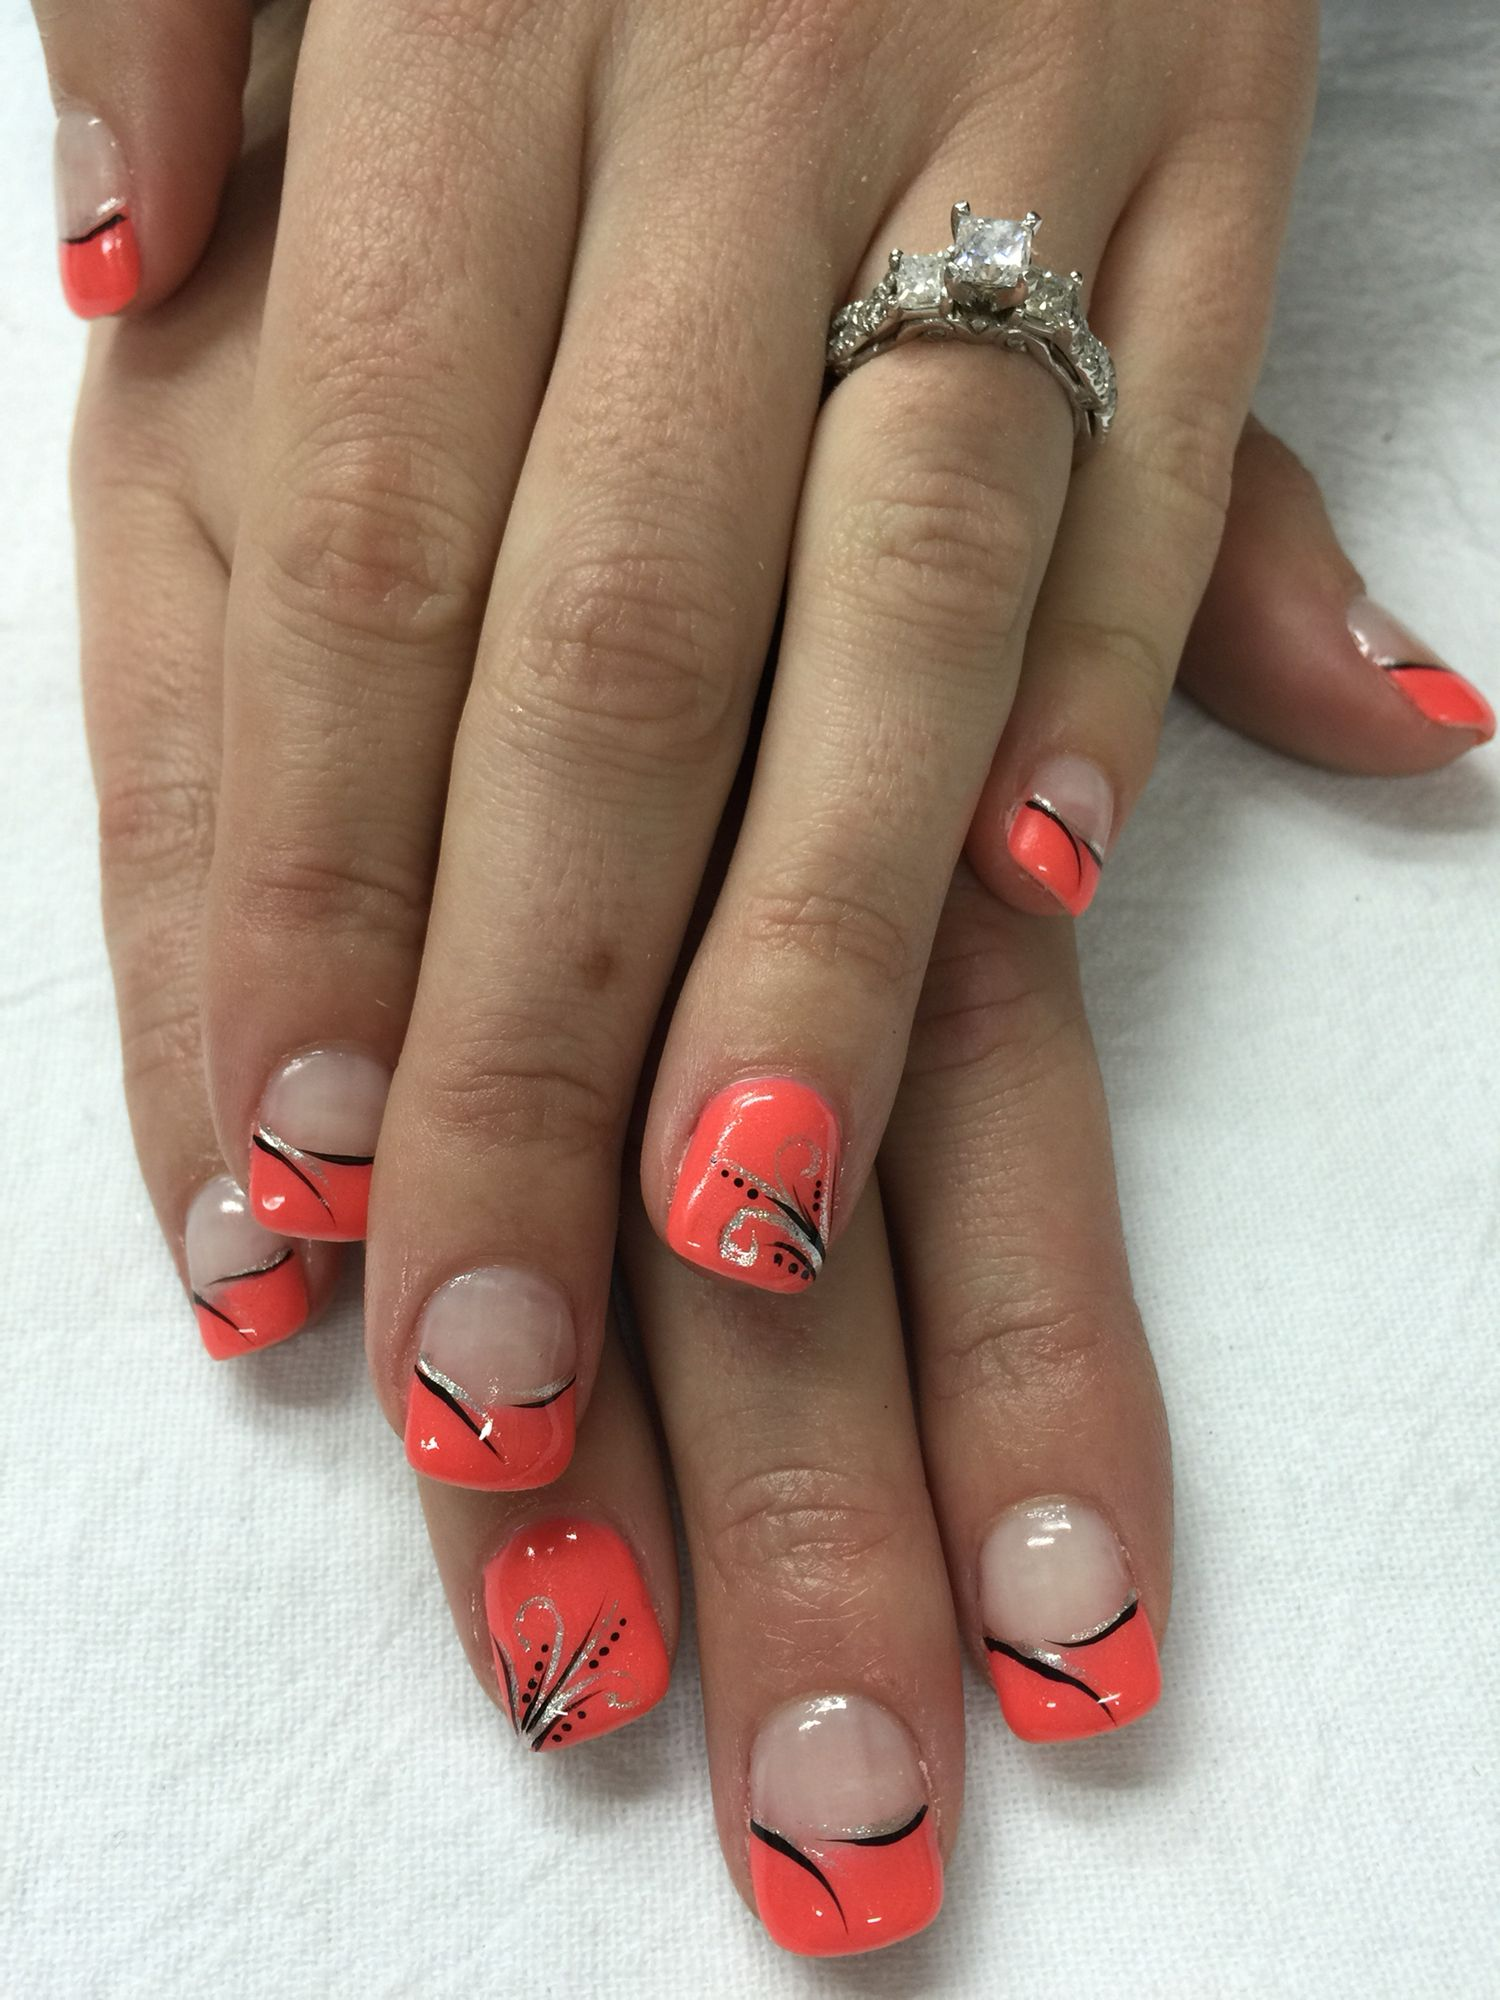 Funky Neon Coral French Gel Nails With Silver Black Accents All Gel Is Nontoxic Odorless French Nail Art Gel Nail Designs Nails